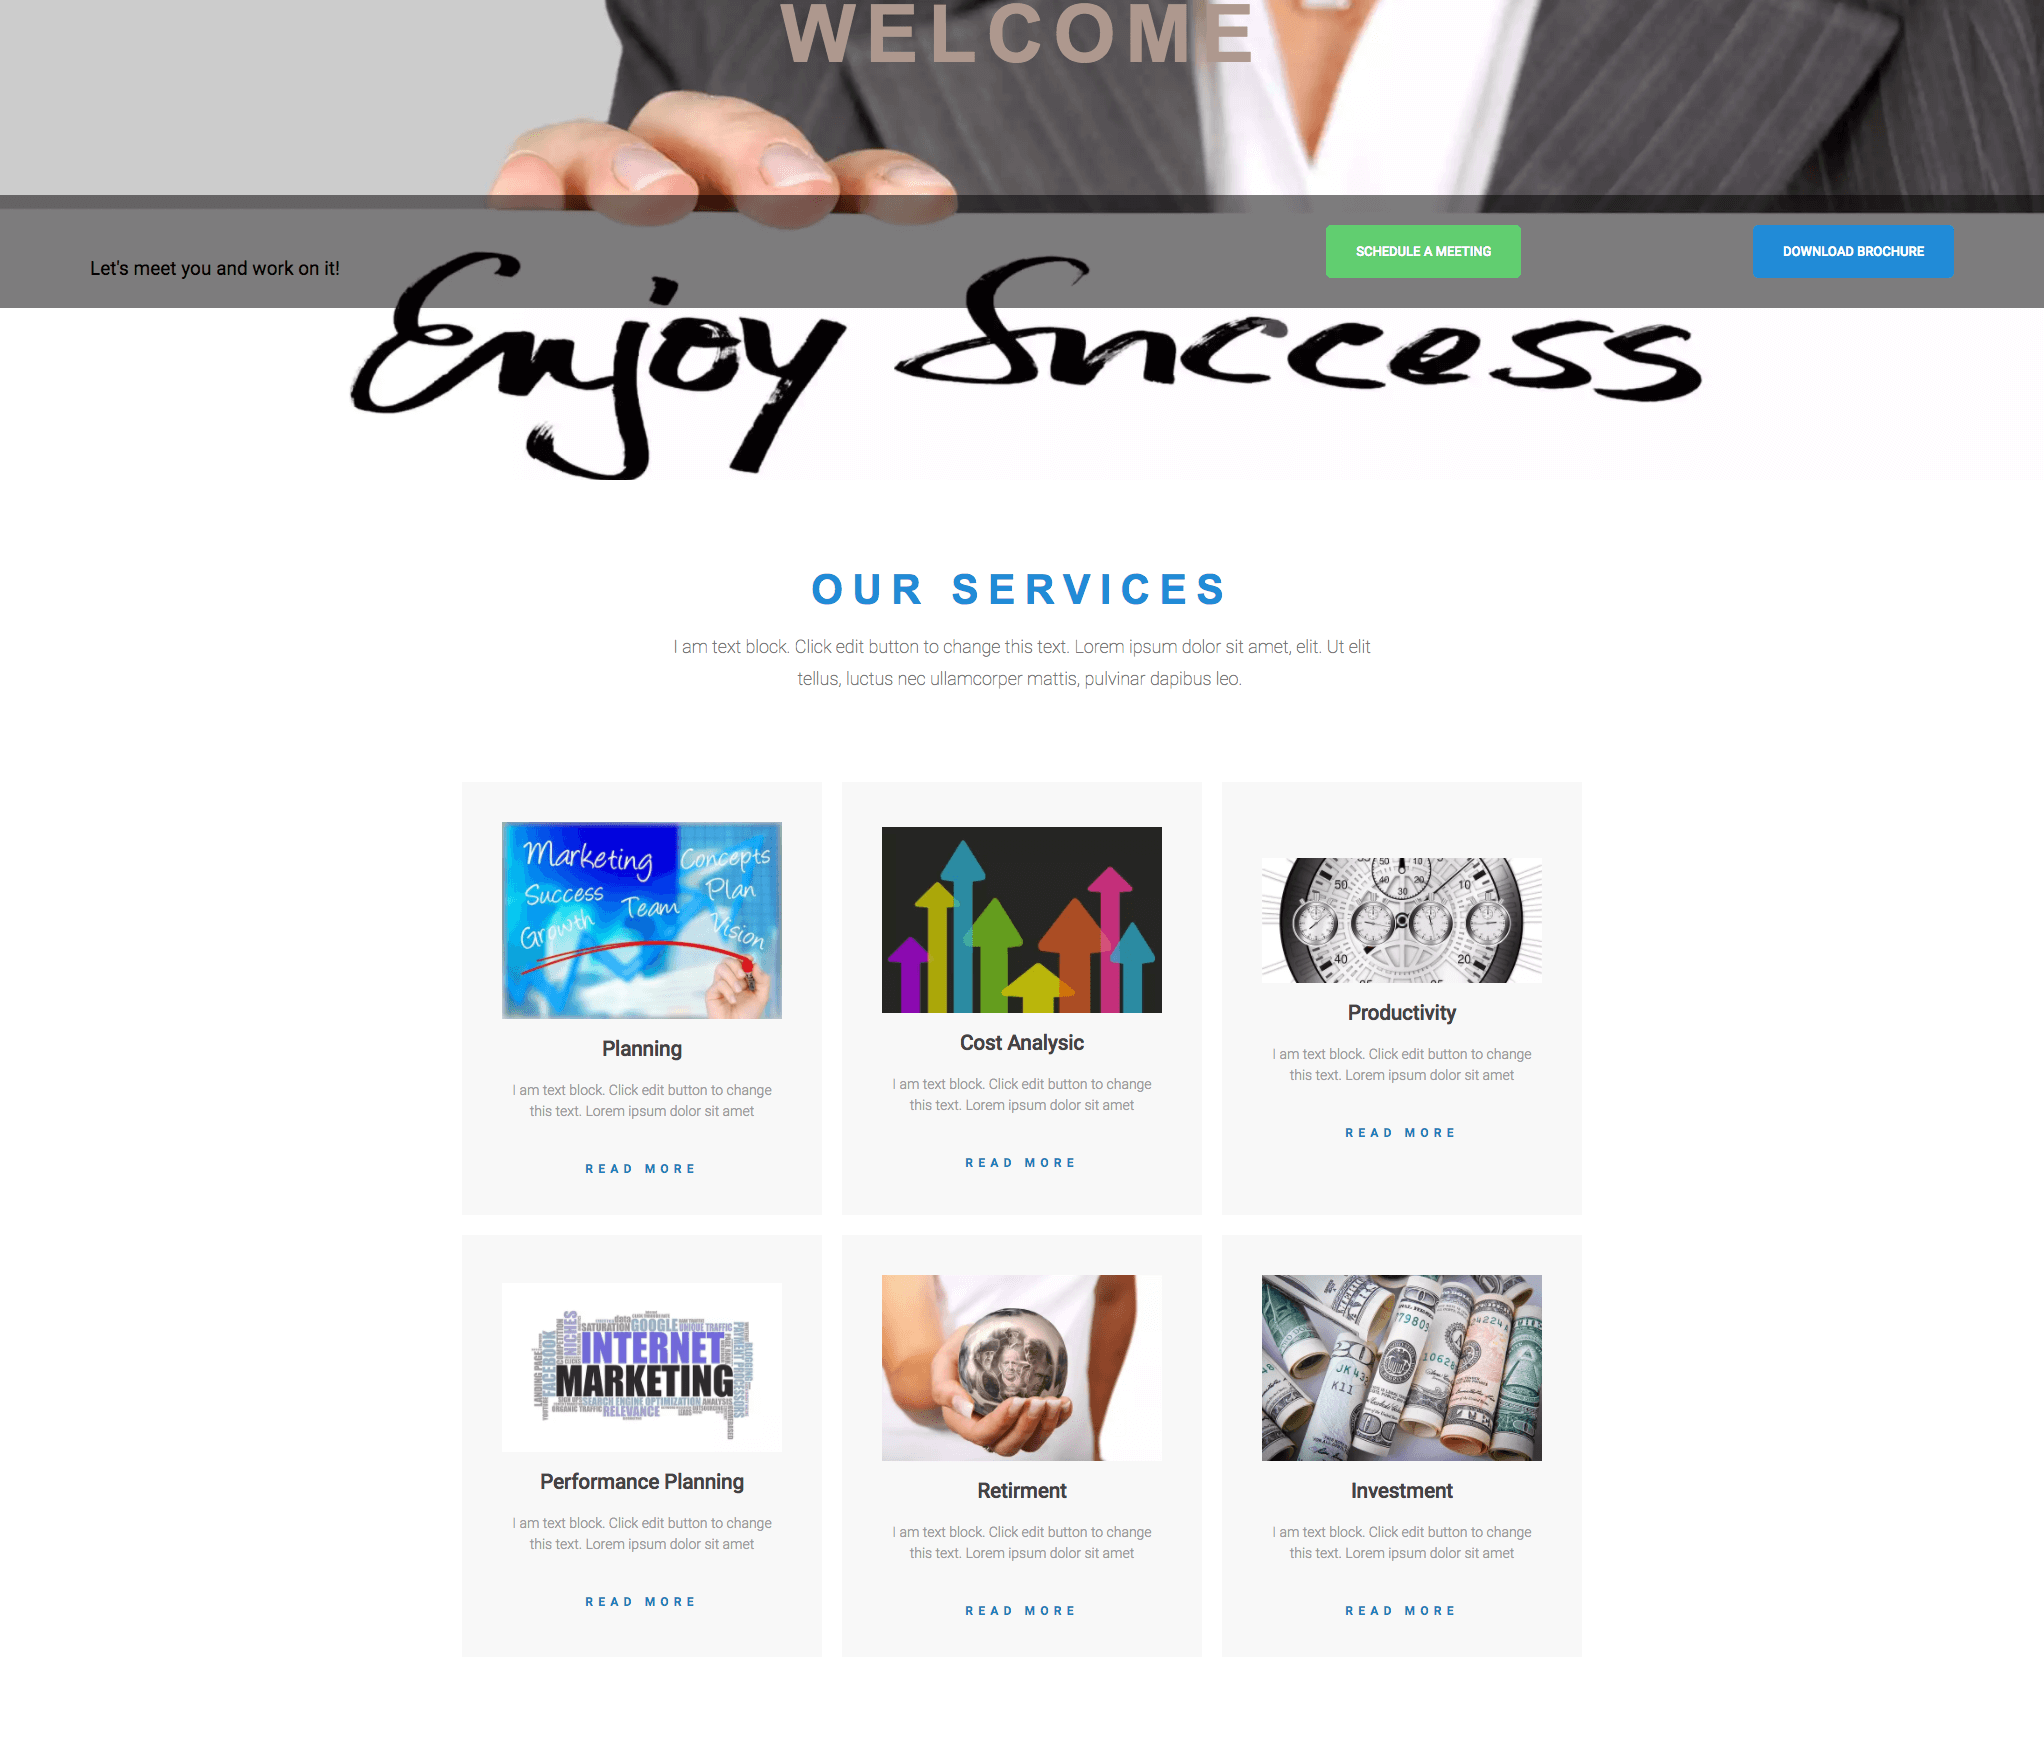 Business Service Offerings